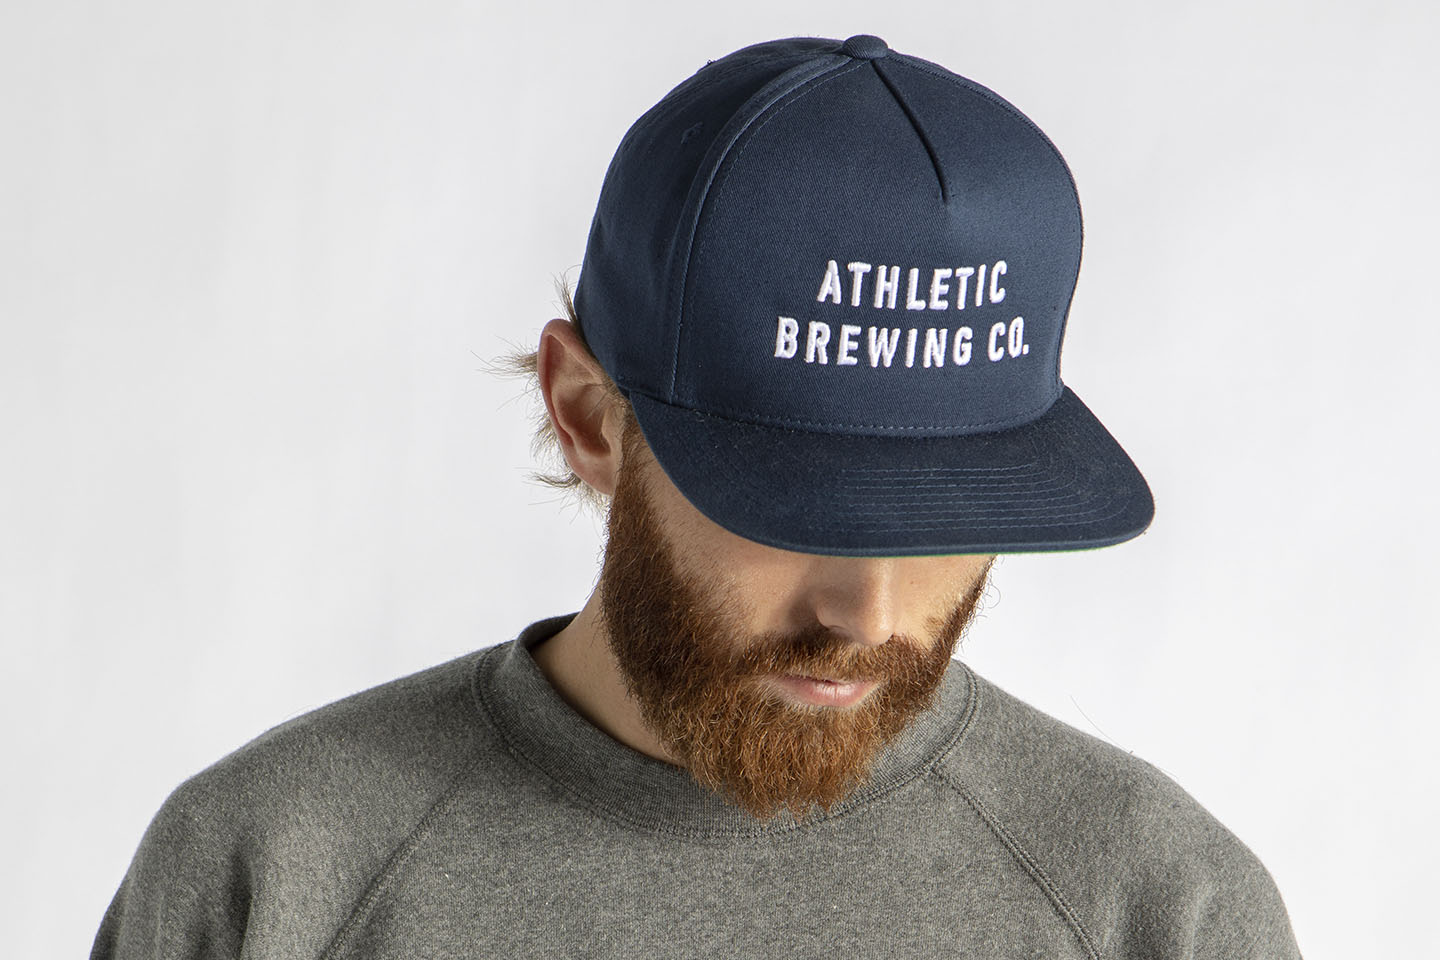 Athletic_Brewing_Co_Merchandise_1.jpg